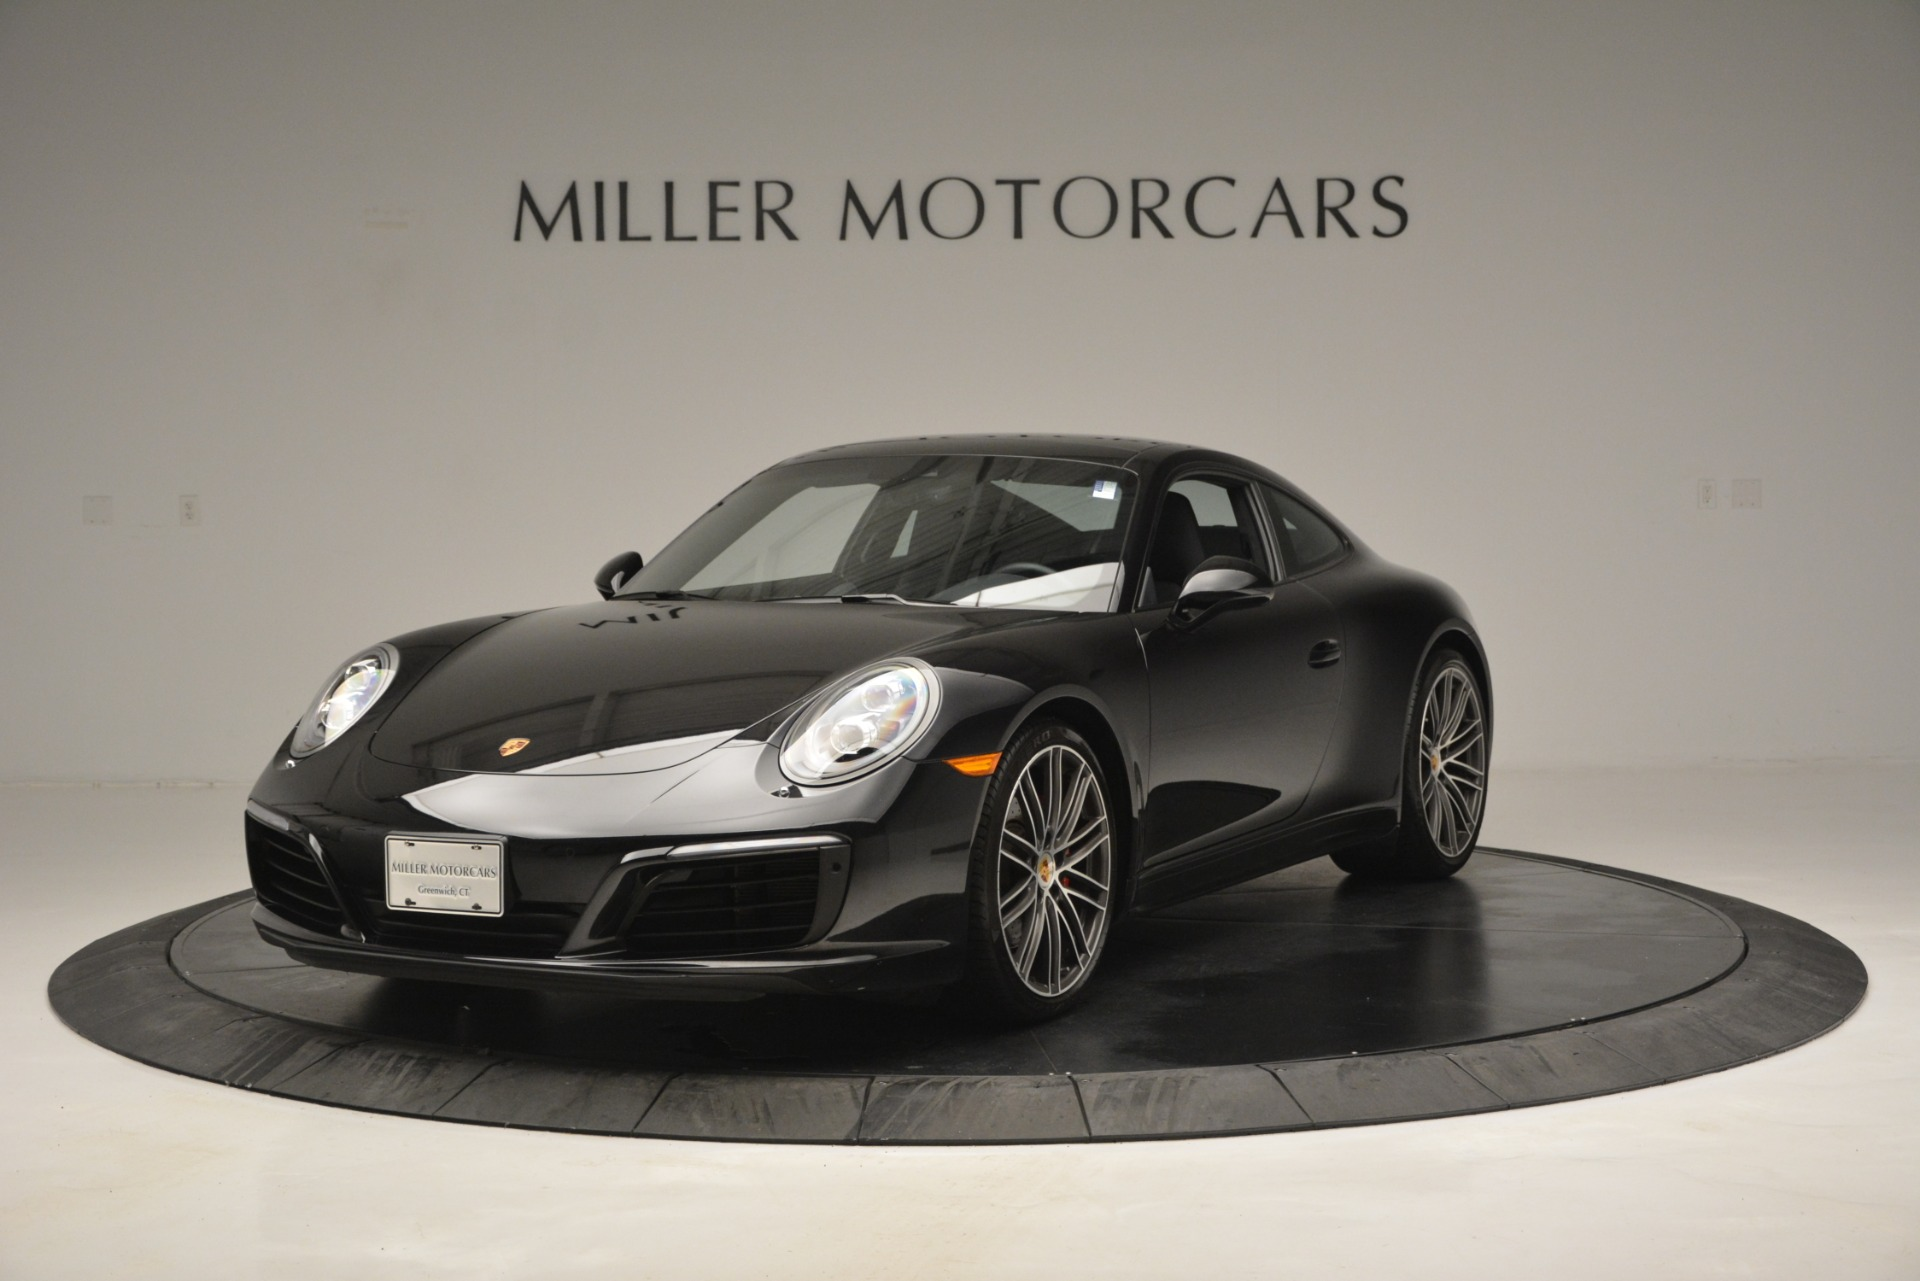 Used 2017 Porsche 911 Carrera 4S for sale Sold at Bentley Greenwich in Greenwich CT 06830 1